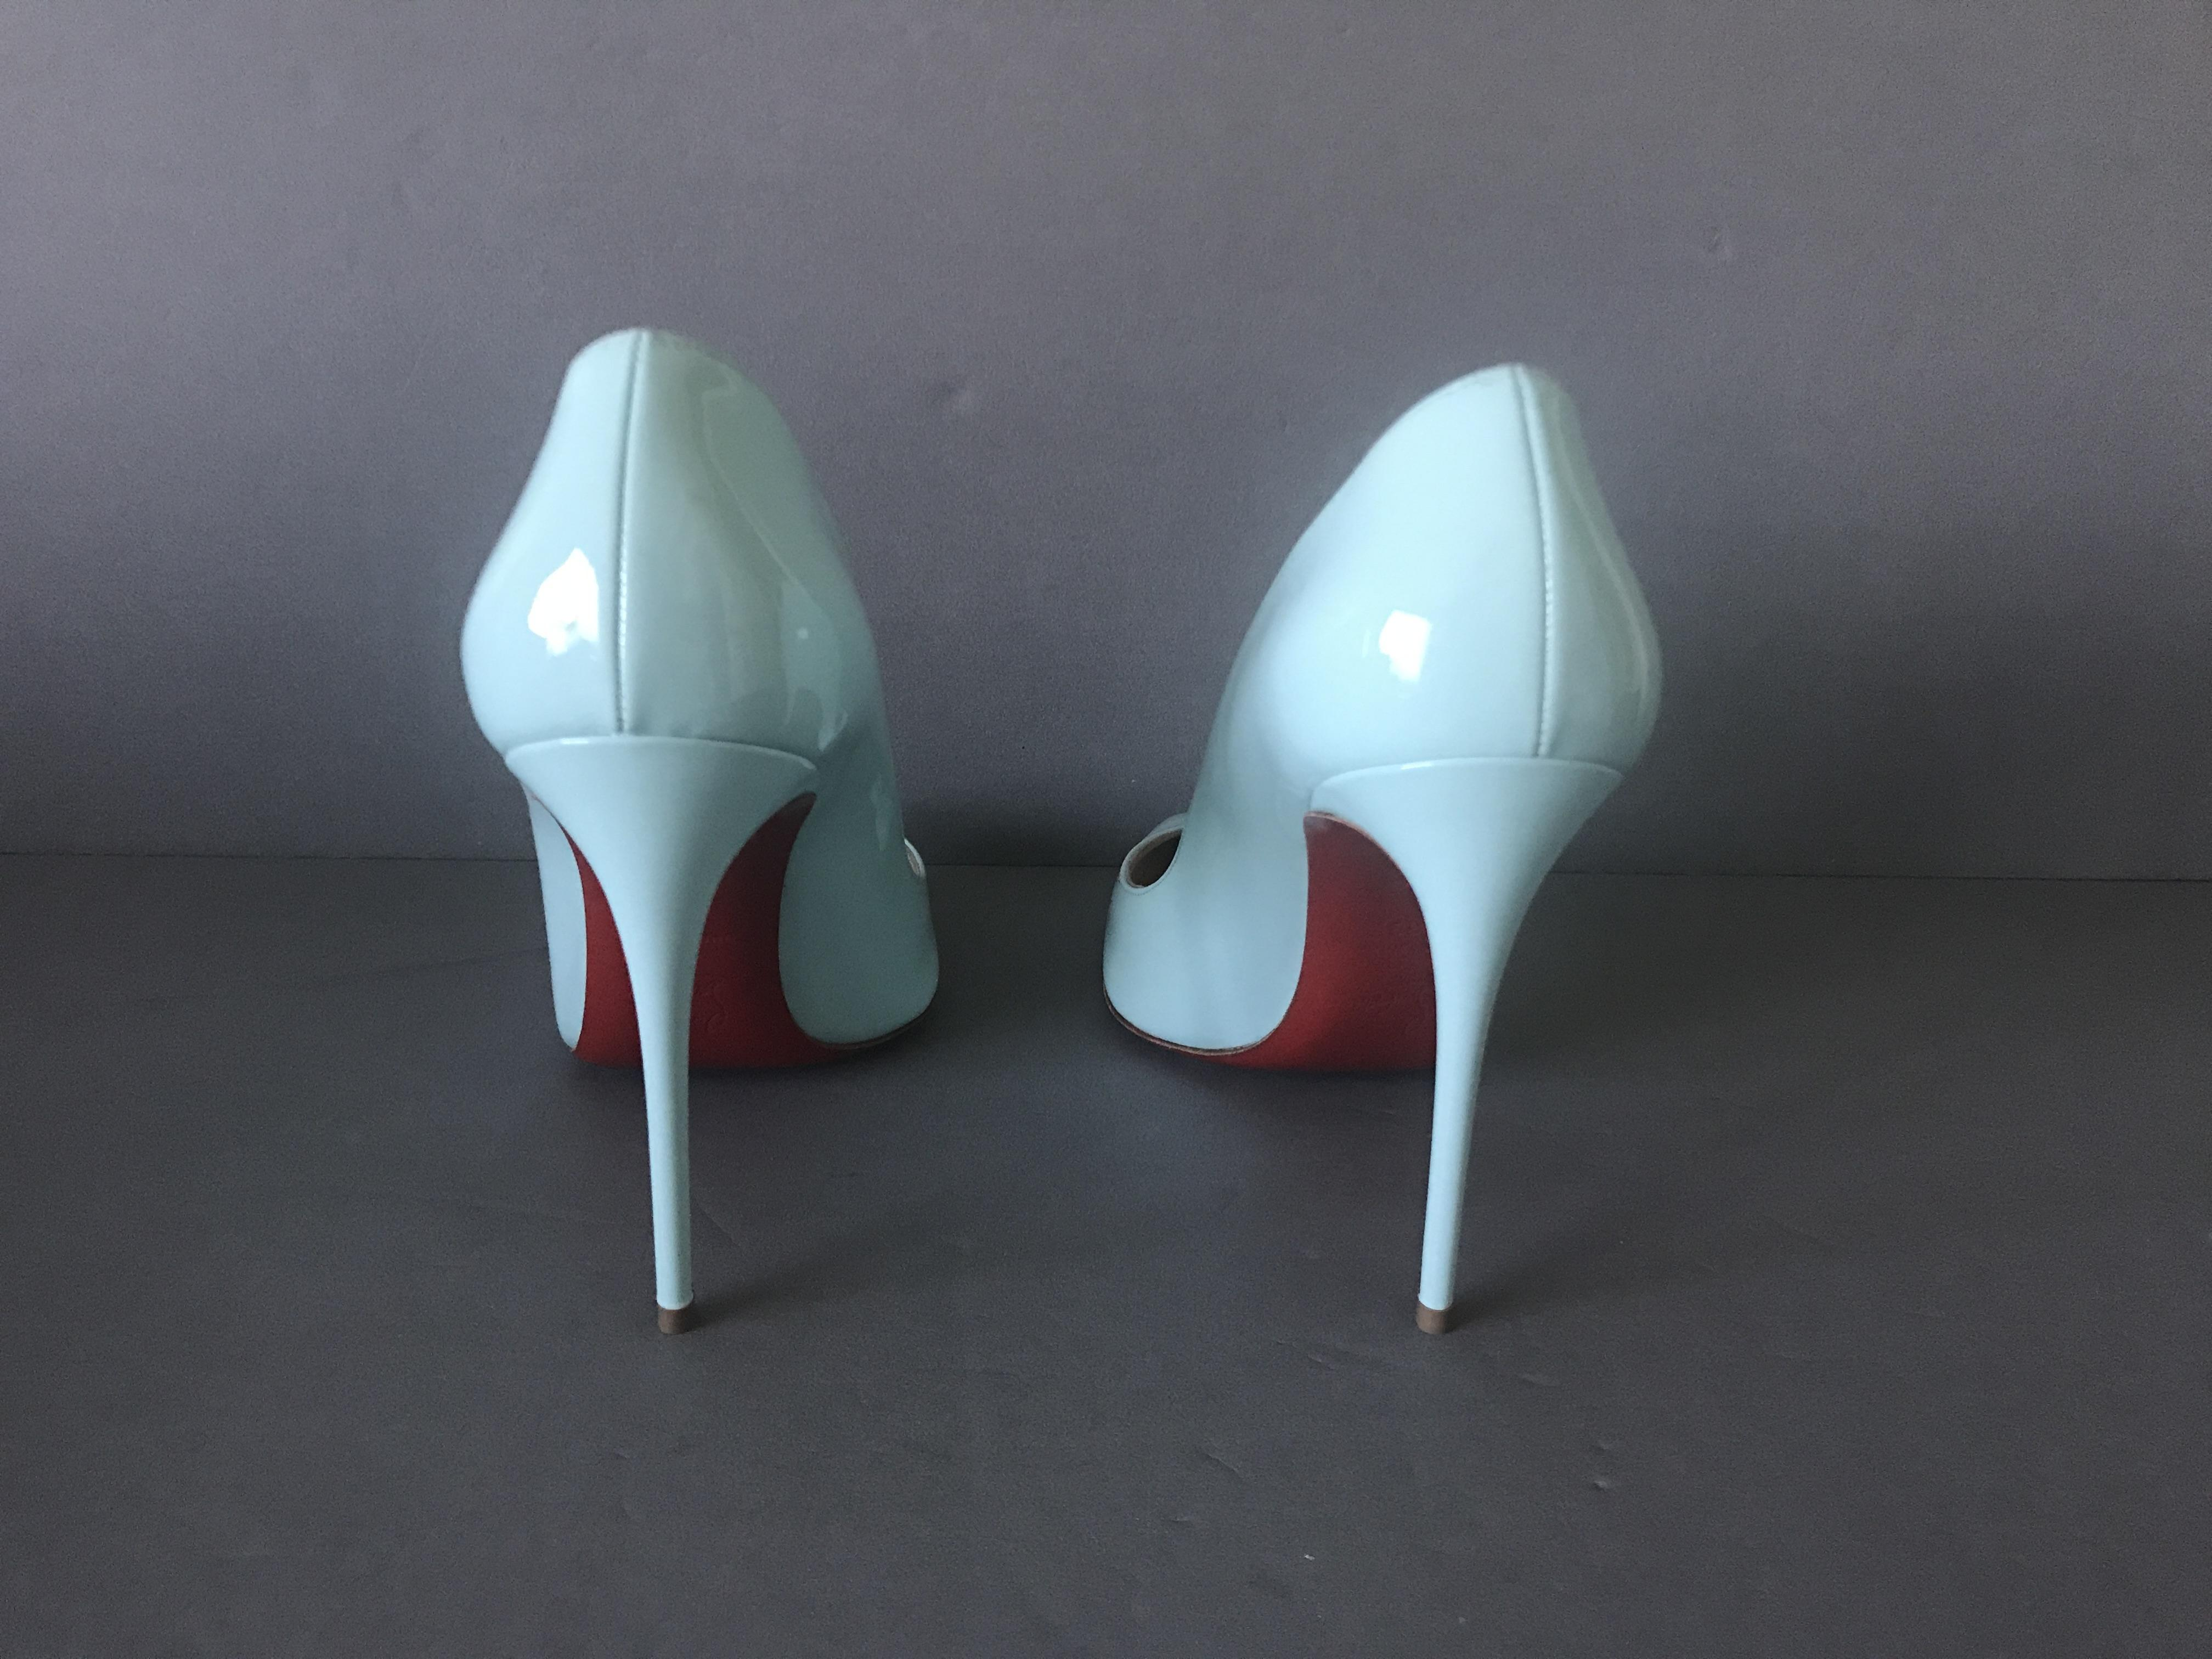 ed99eb6c3c0 Christian Louboutin Aqua Blue Pigalle Follies 100 Source Source ...